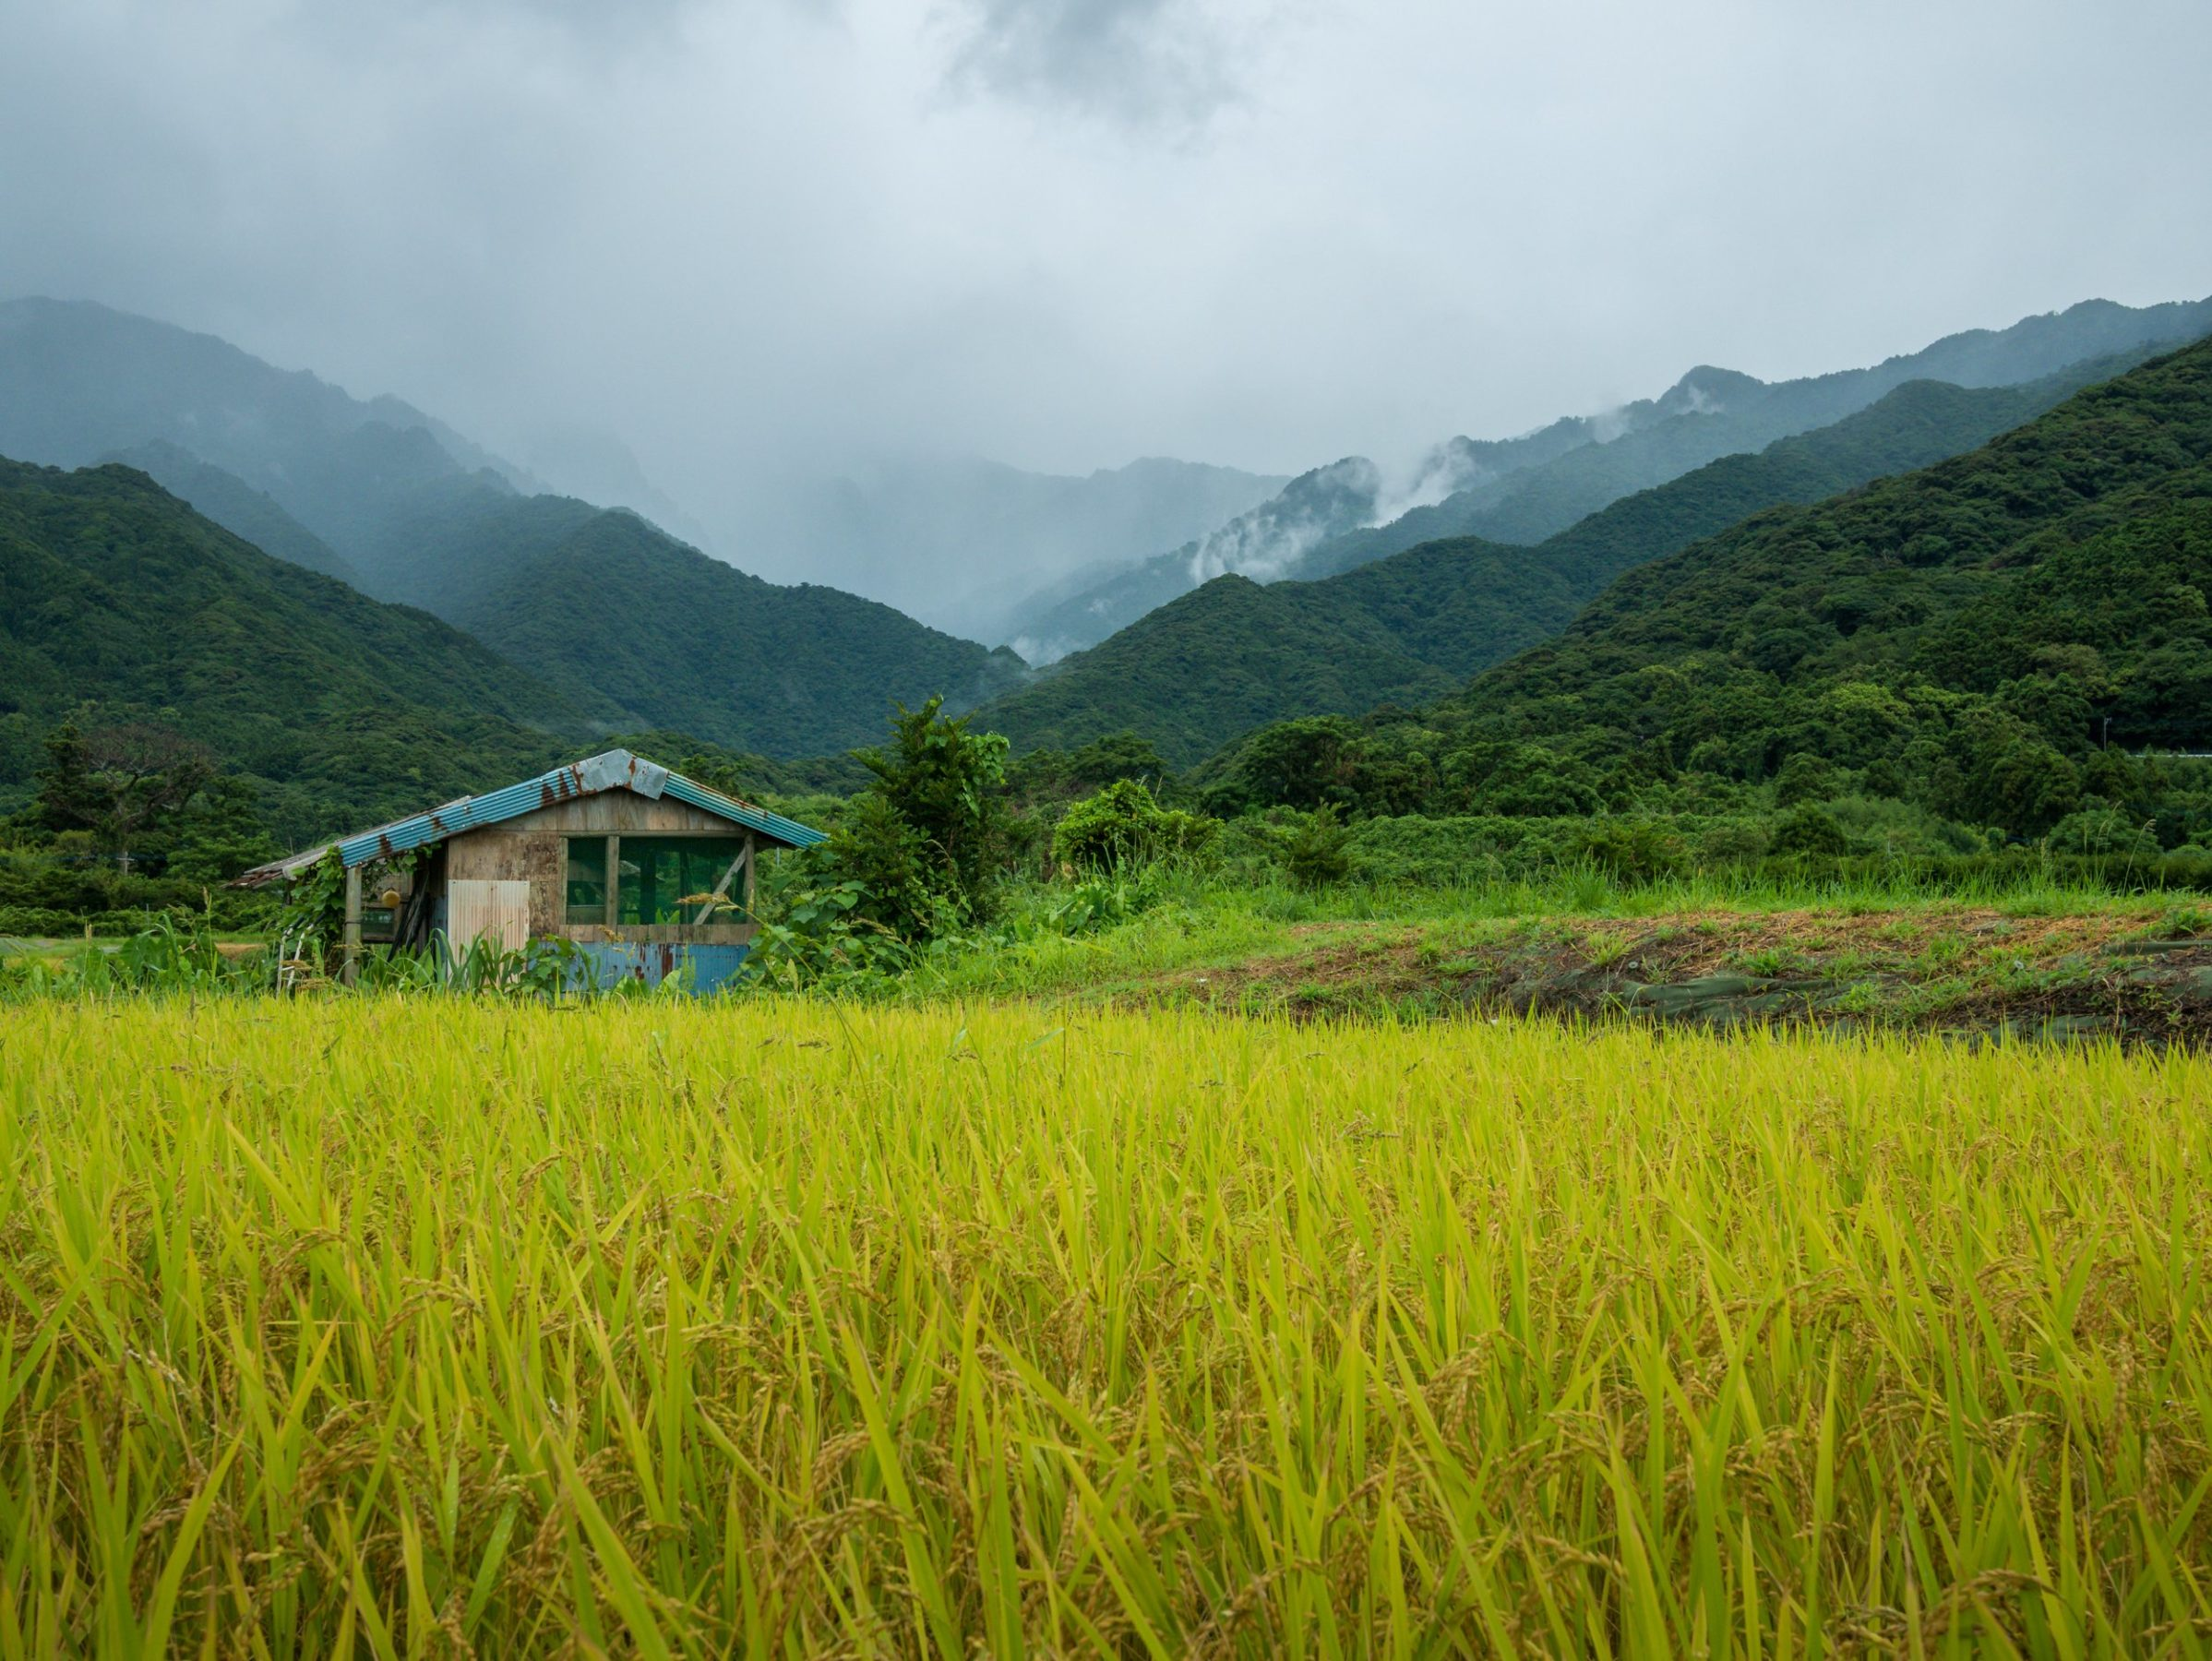 Abandoned building in a field of long grass with mountains in the background